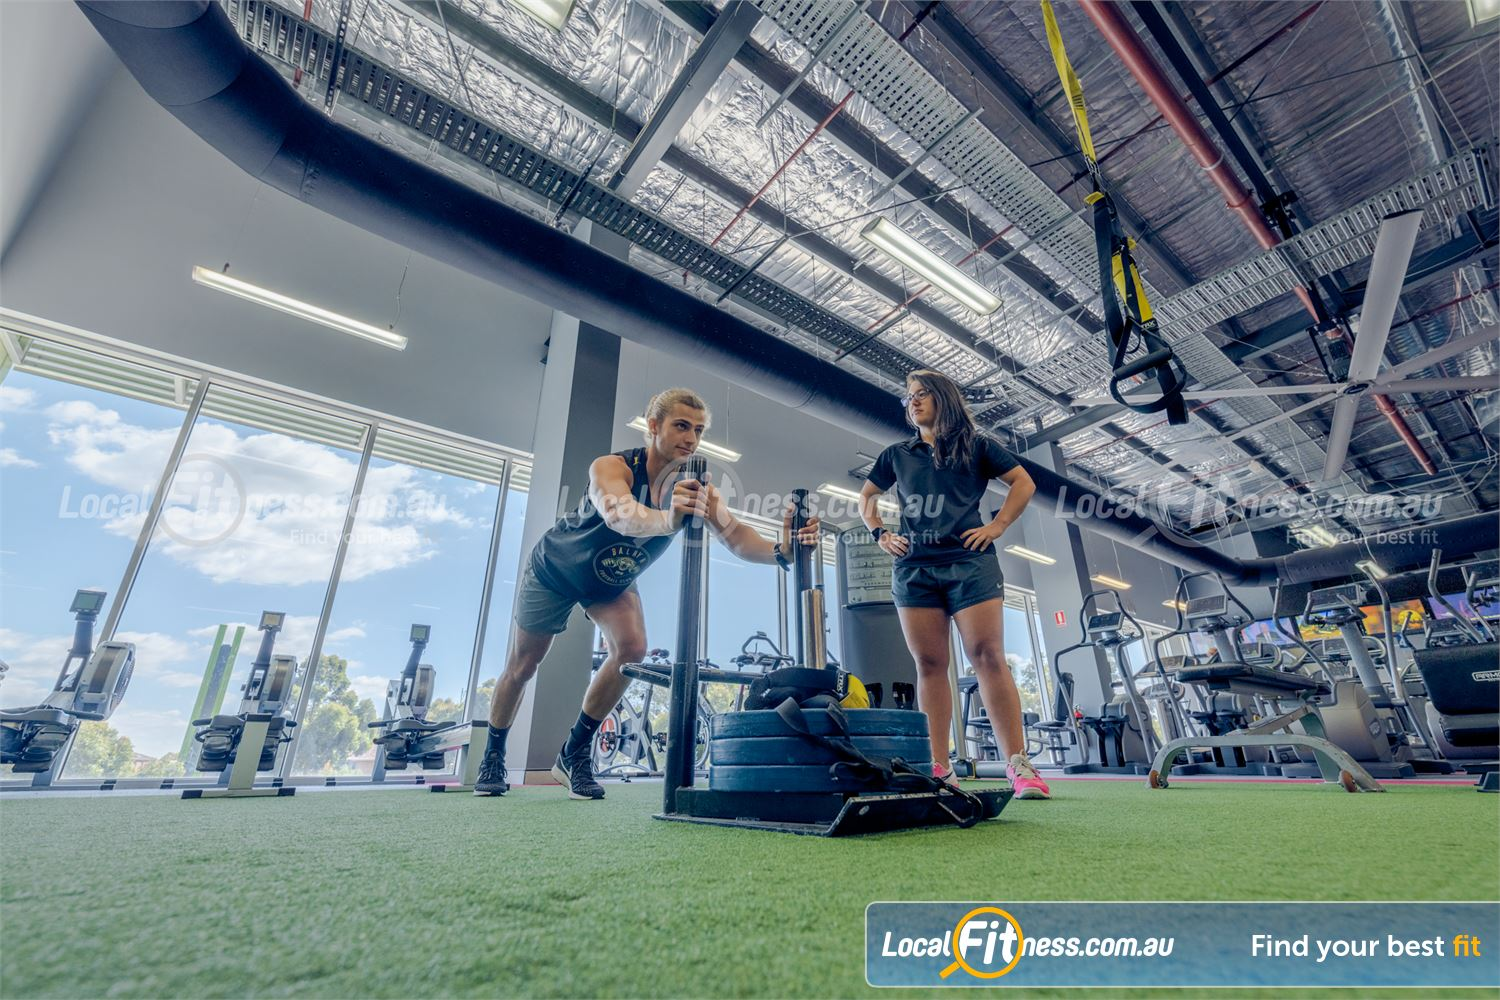 Element Fitness Health Club Near Vermont South Our Nunawading gym team can program functional training into your workout.